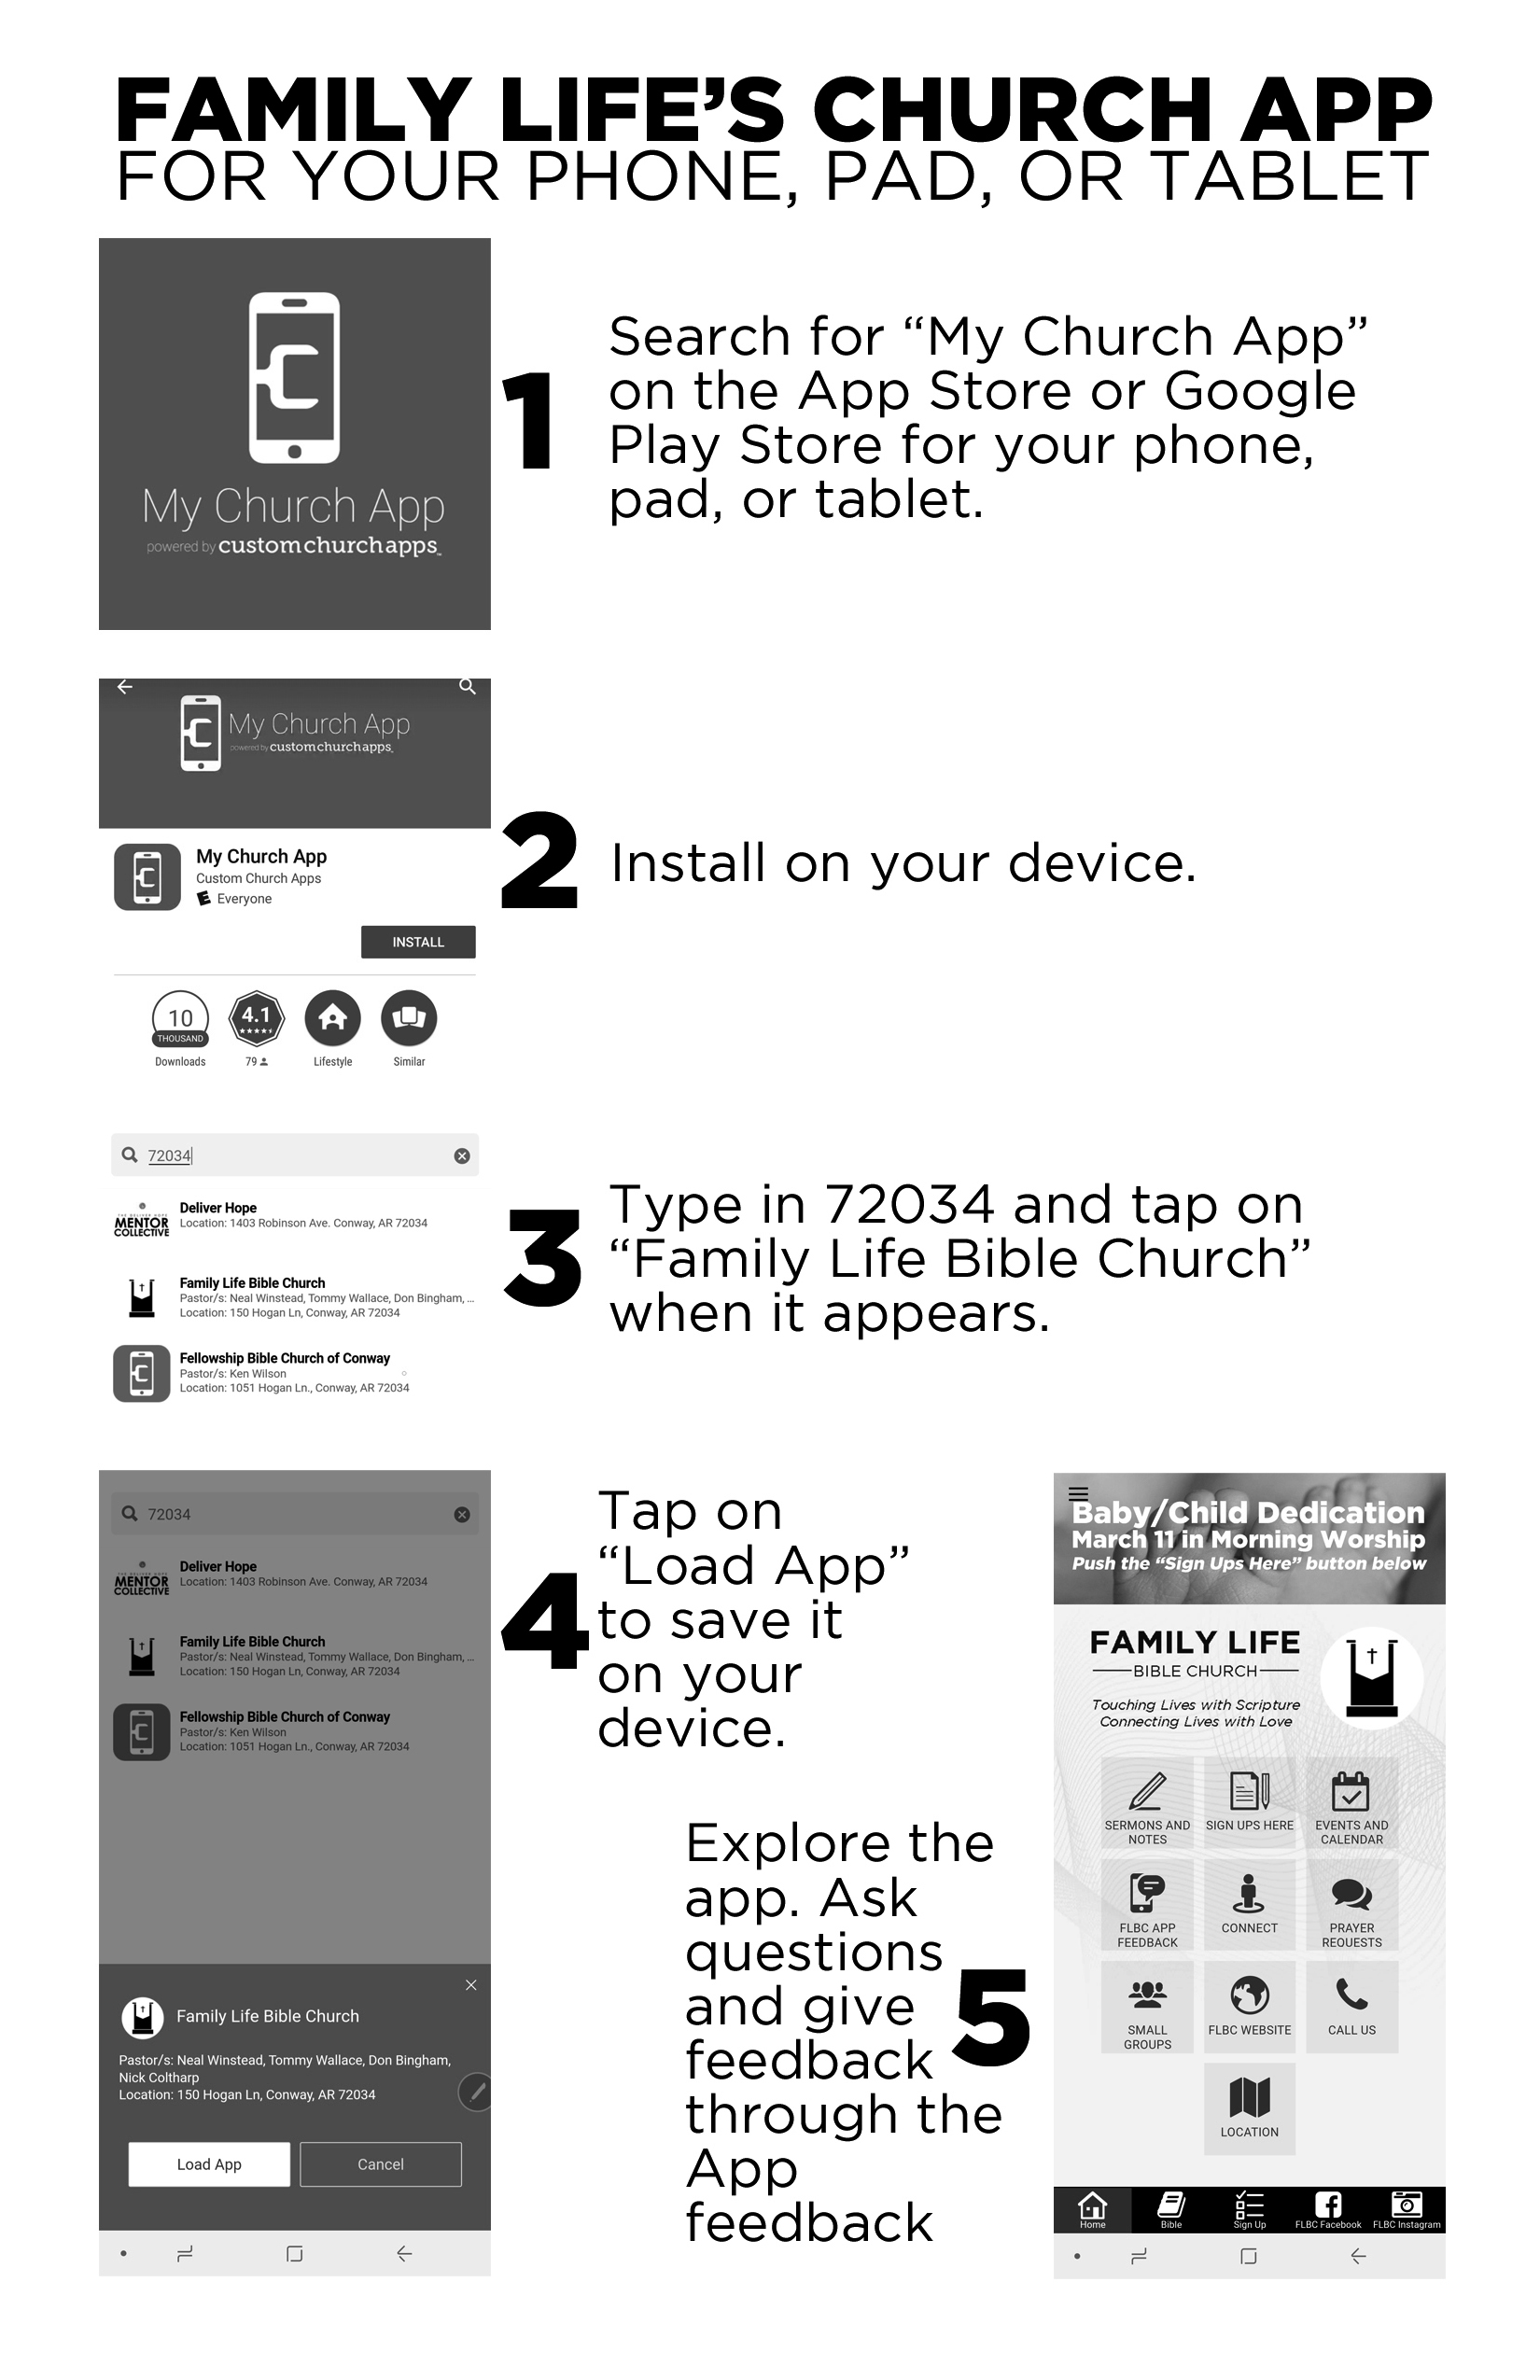 Adding Our App - Follow the instructions in the diagram. You can get started by following these links:For iPhone and iPad click here.For Android devices click here.Once there simply follow the steps found here. If you have questions you may contact us at familylifebc@gmail.com.